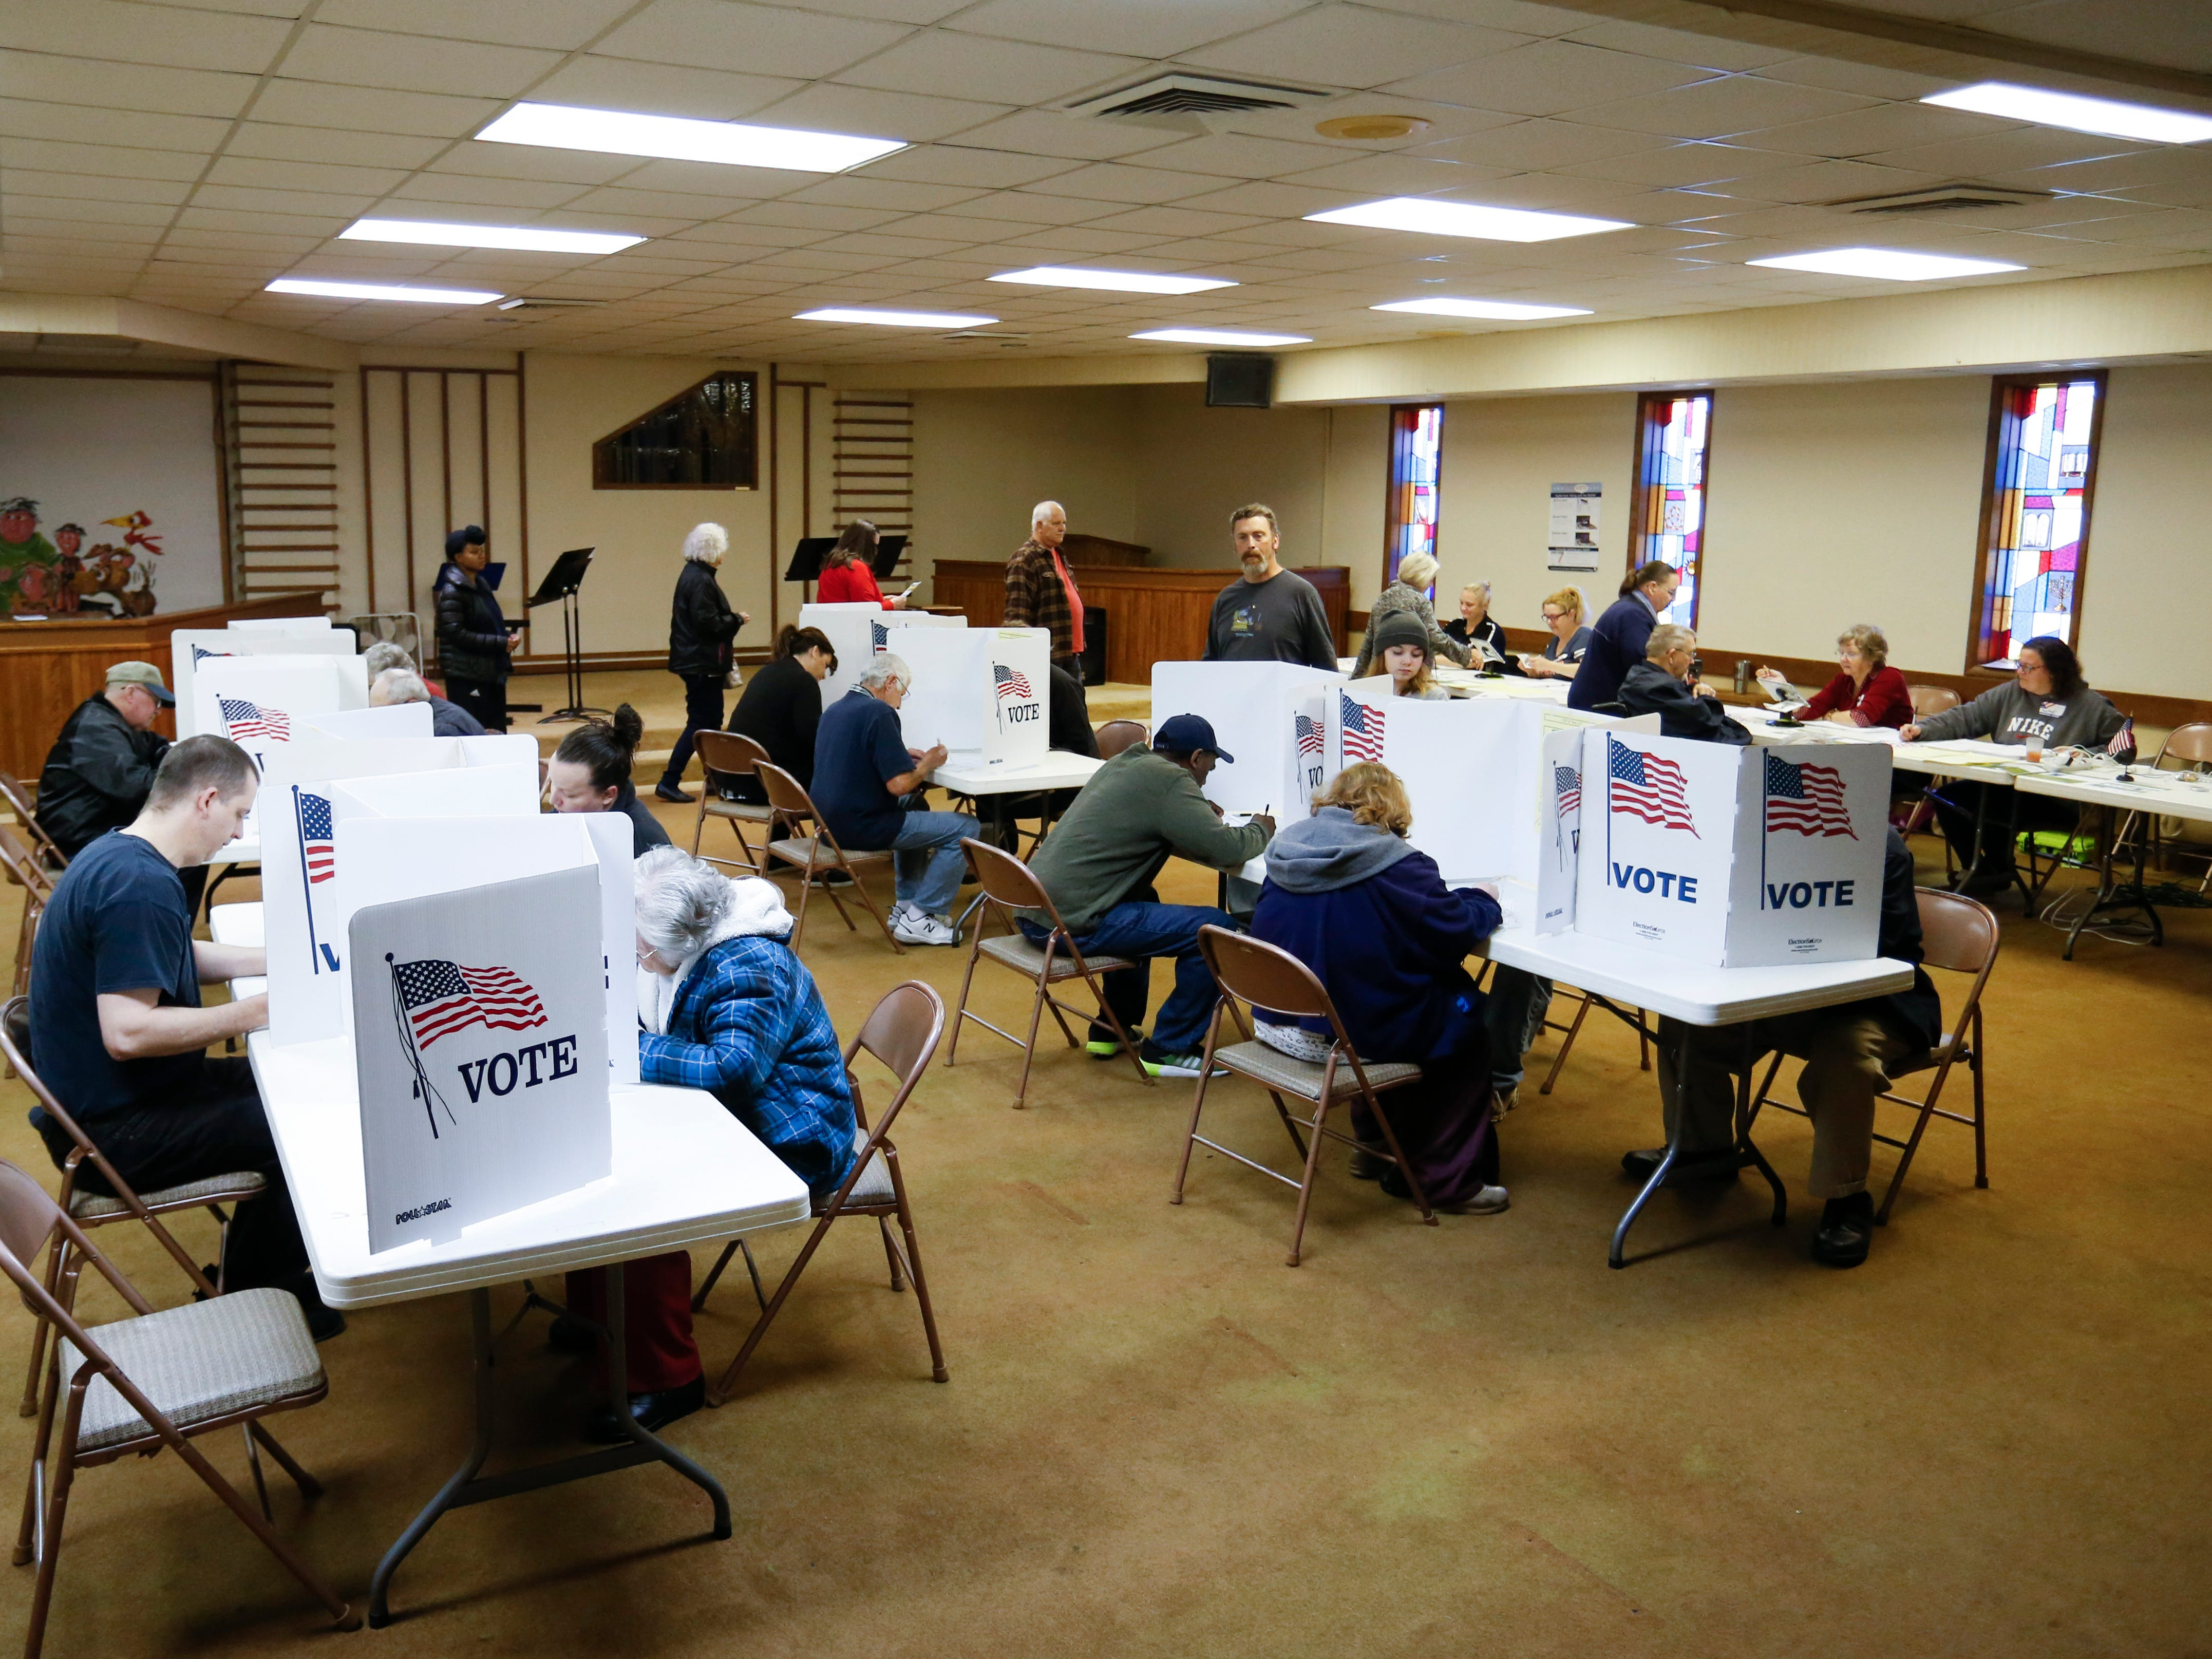 Voters fill out ballots at the Woodland Heights polling location on Tuesday, Nov. 6, 2018.